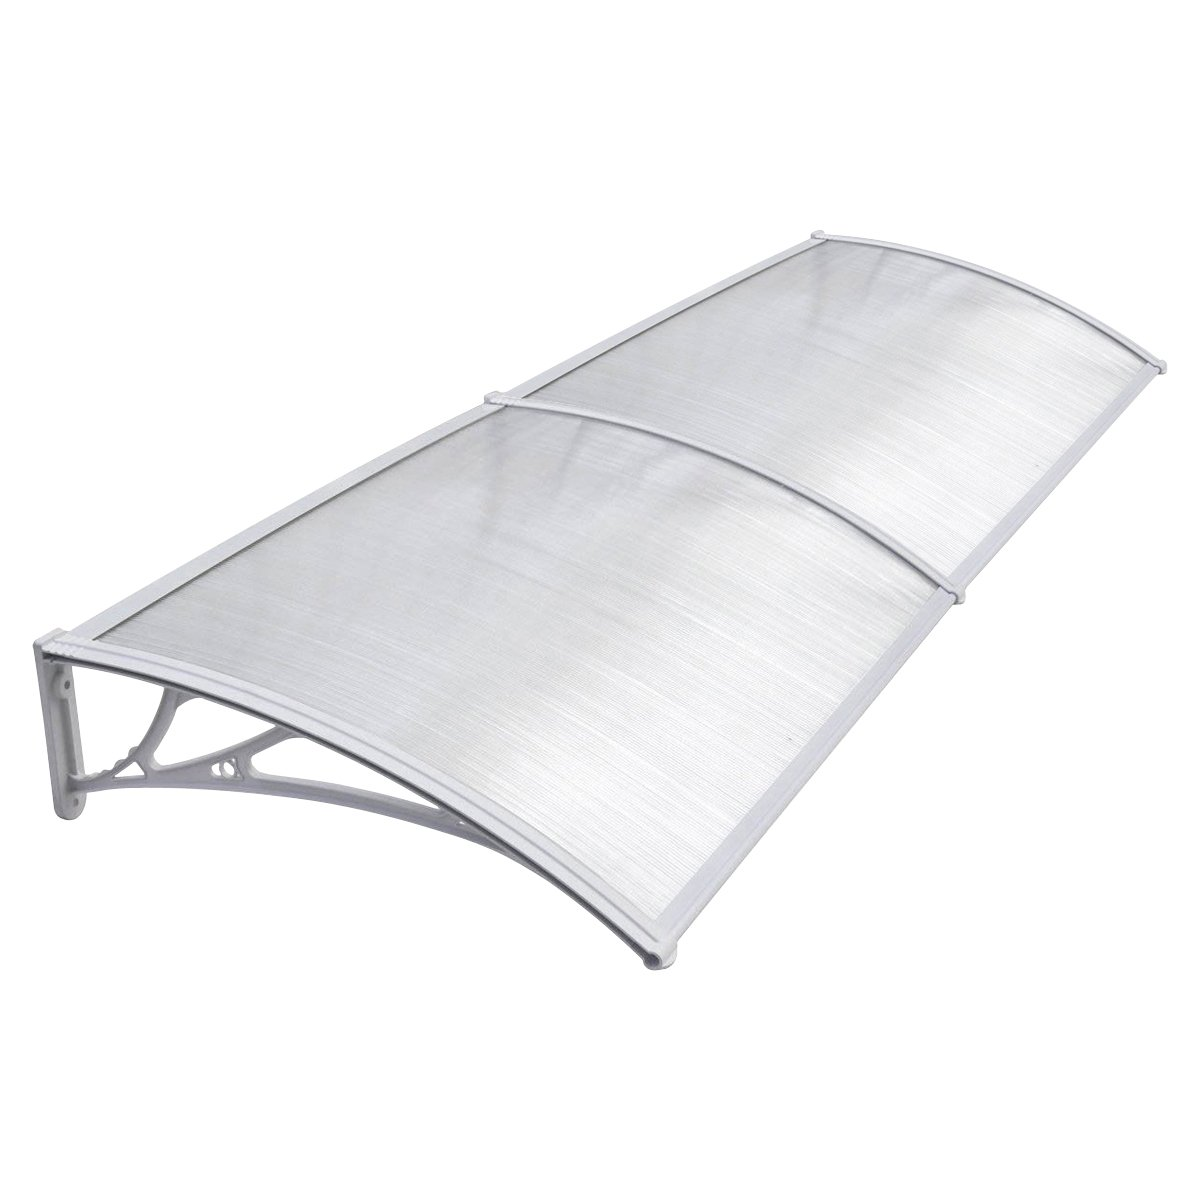 Door Canopy Awning Shelter Front Back Porch Out Door Shade 80 X 120CM (Double White) DennyShop